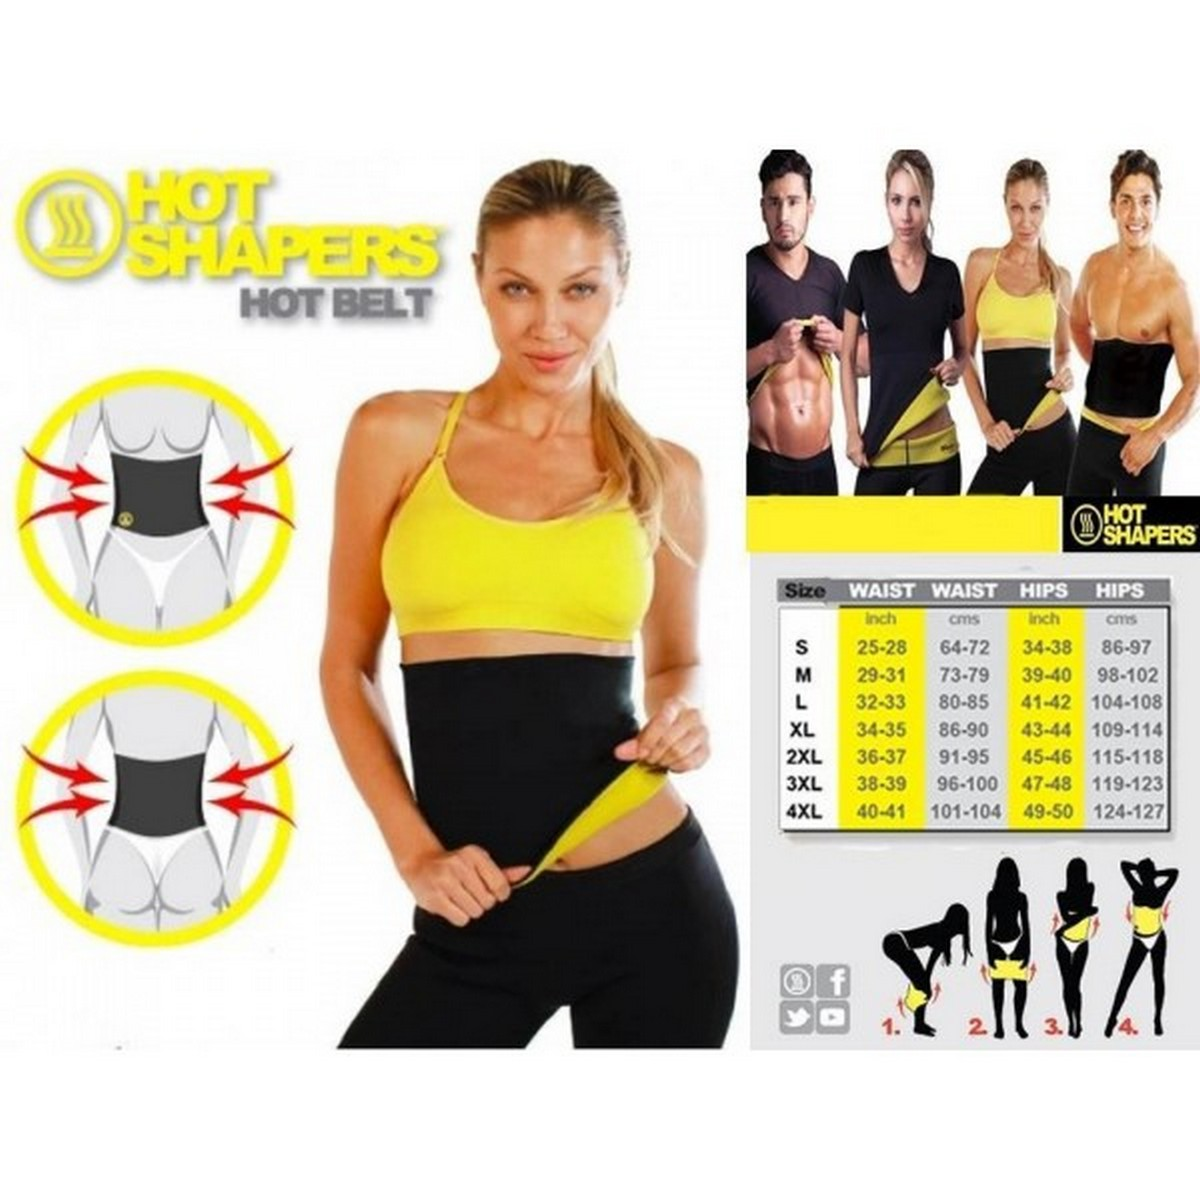 HOT SHAPERS Hot Belt for Women – Sweat Enhancing Neoprene Stomach Shaper and Belly Fat Burner for a Slimmer & Trimmer Waist ( Small)